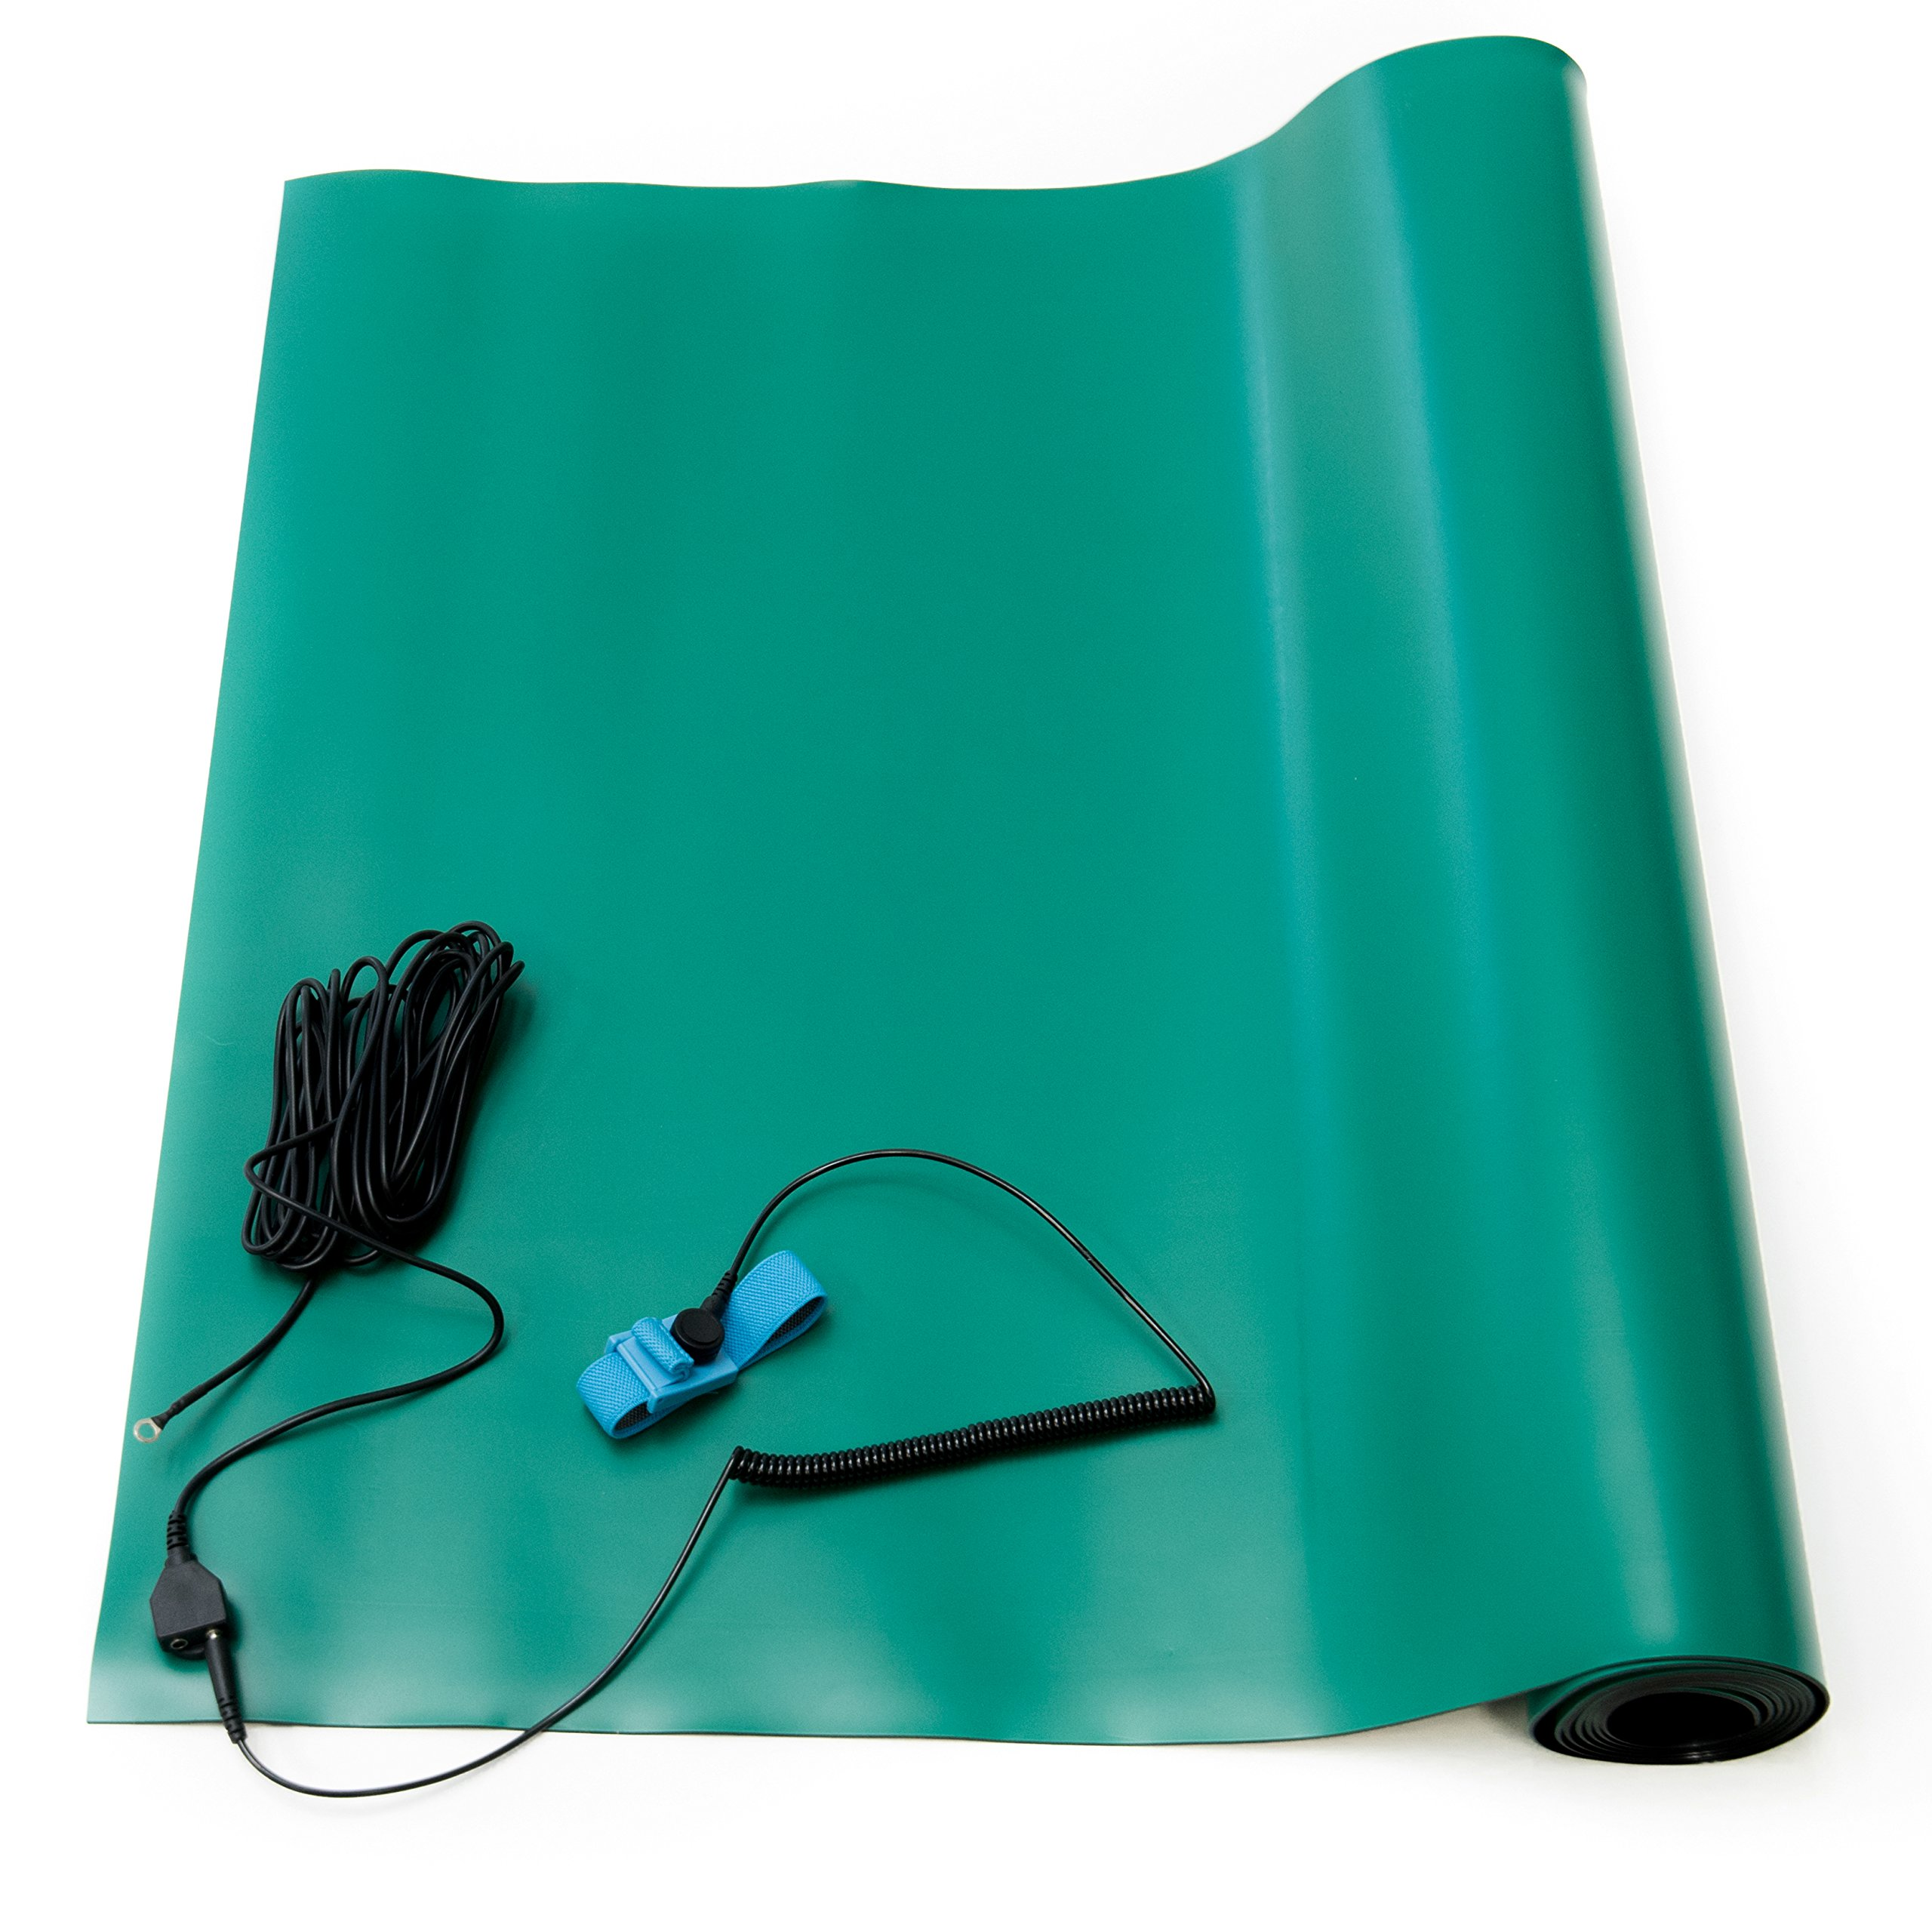 Bertech 2059T-20x24GNKT Green Rubber ESD High Temperature Mat Kit with a Wrist Strap and Grounding Cord, 20'' Wide x 24'' Long x 0.093'' Thick